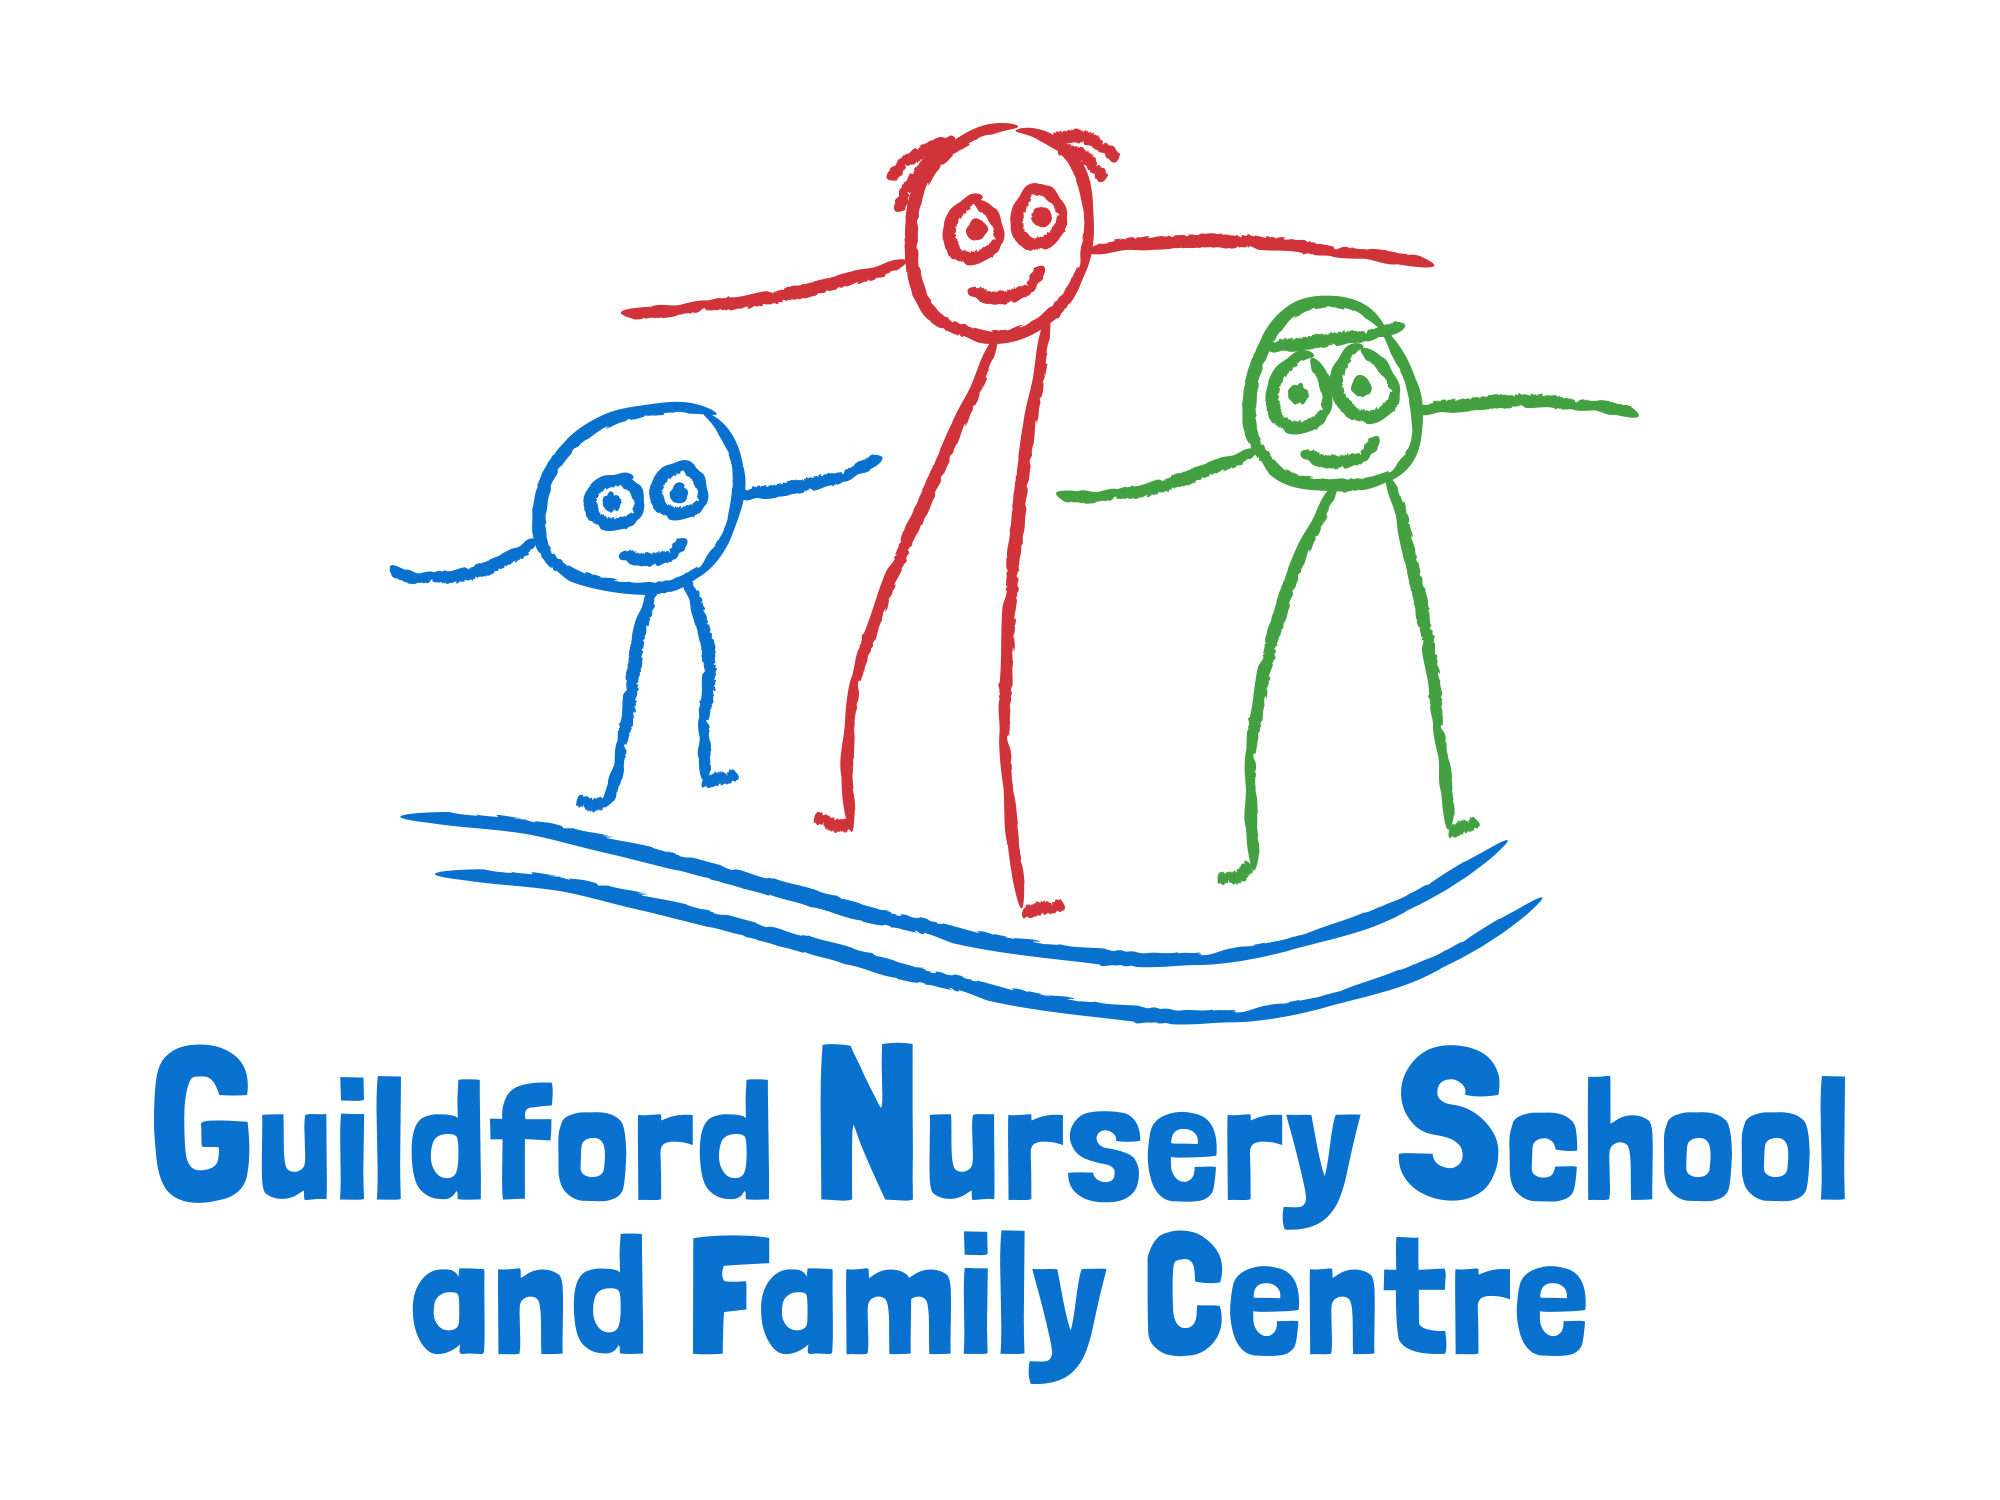 Guildford Nursery School and Children